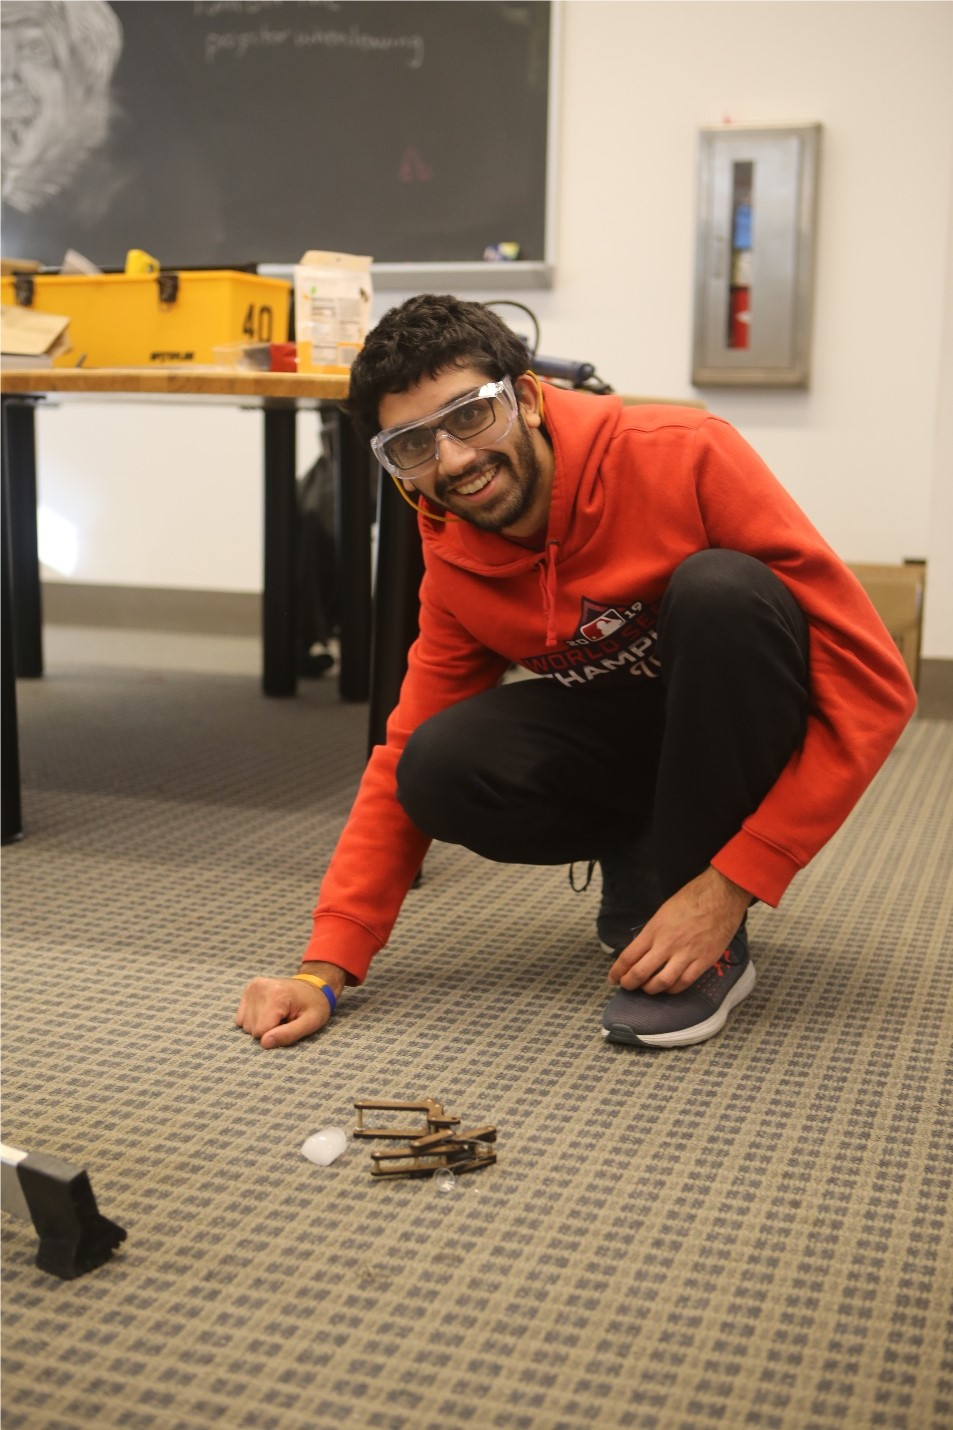 A student wearing safety glasses crouching on the floor with an engineering project.